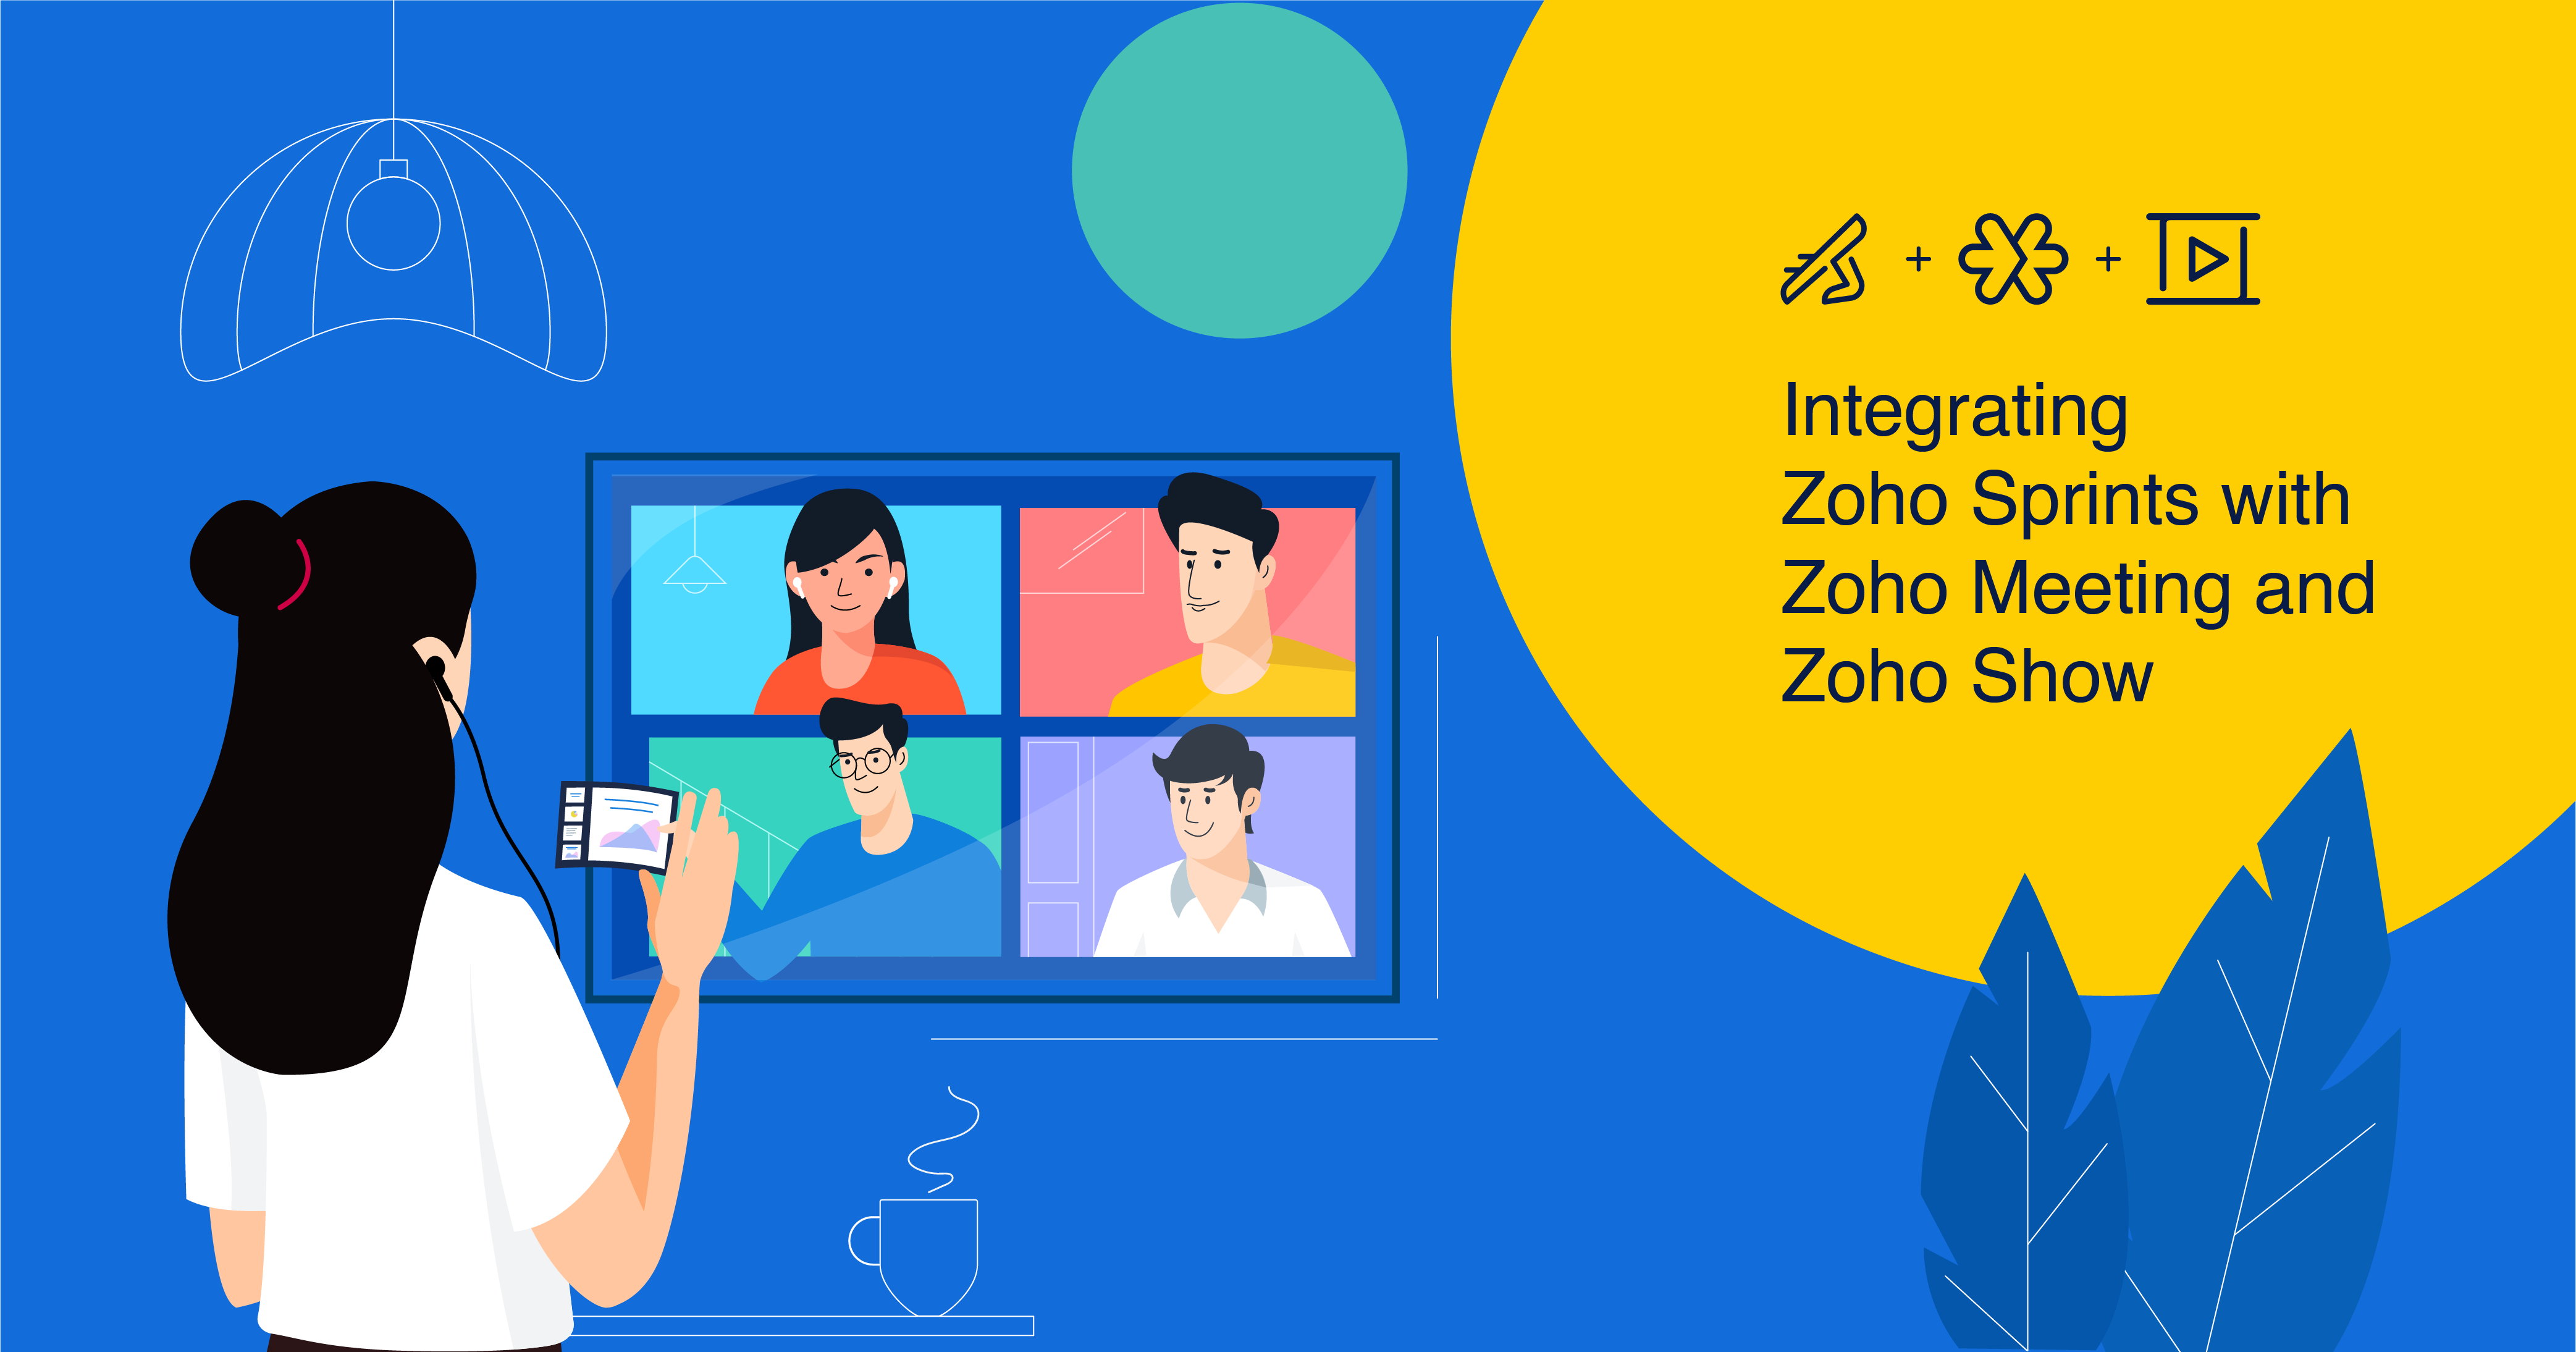 Work smarter by integrating Zoho Sprints with Zoho Meeting and Zoho Show